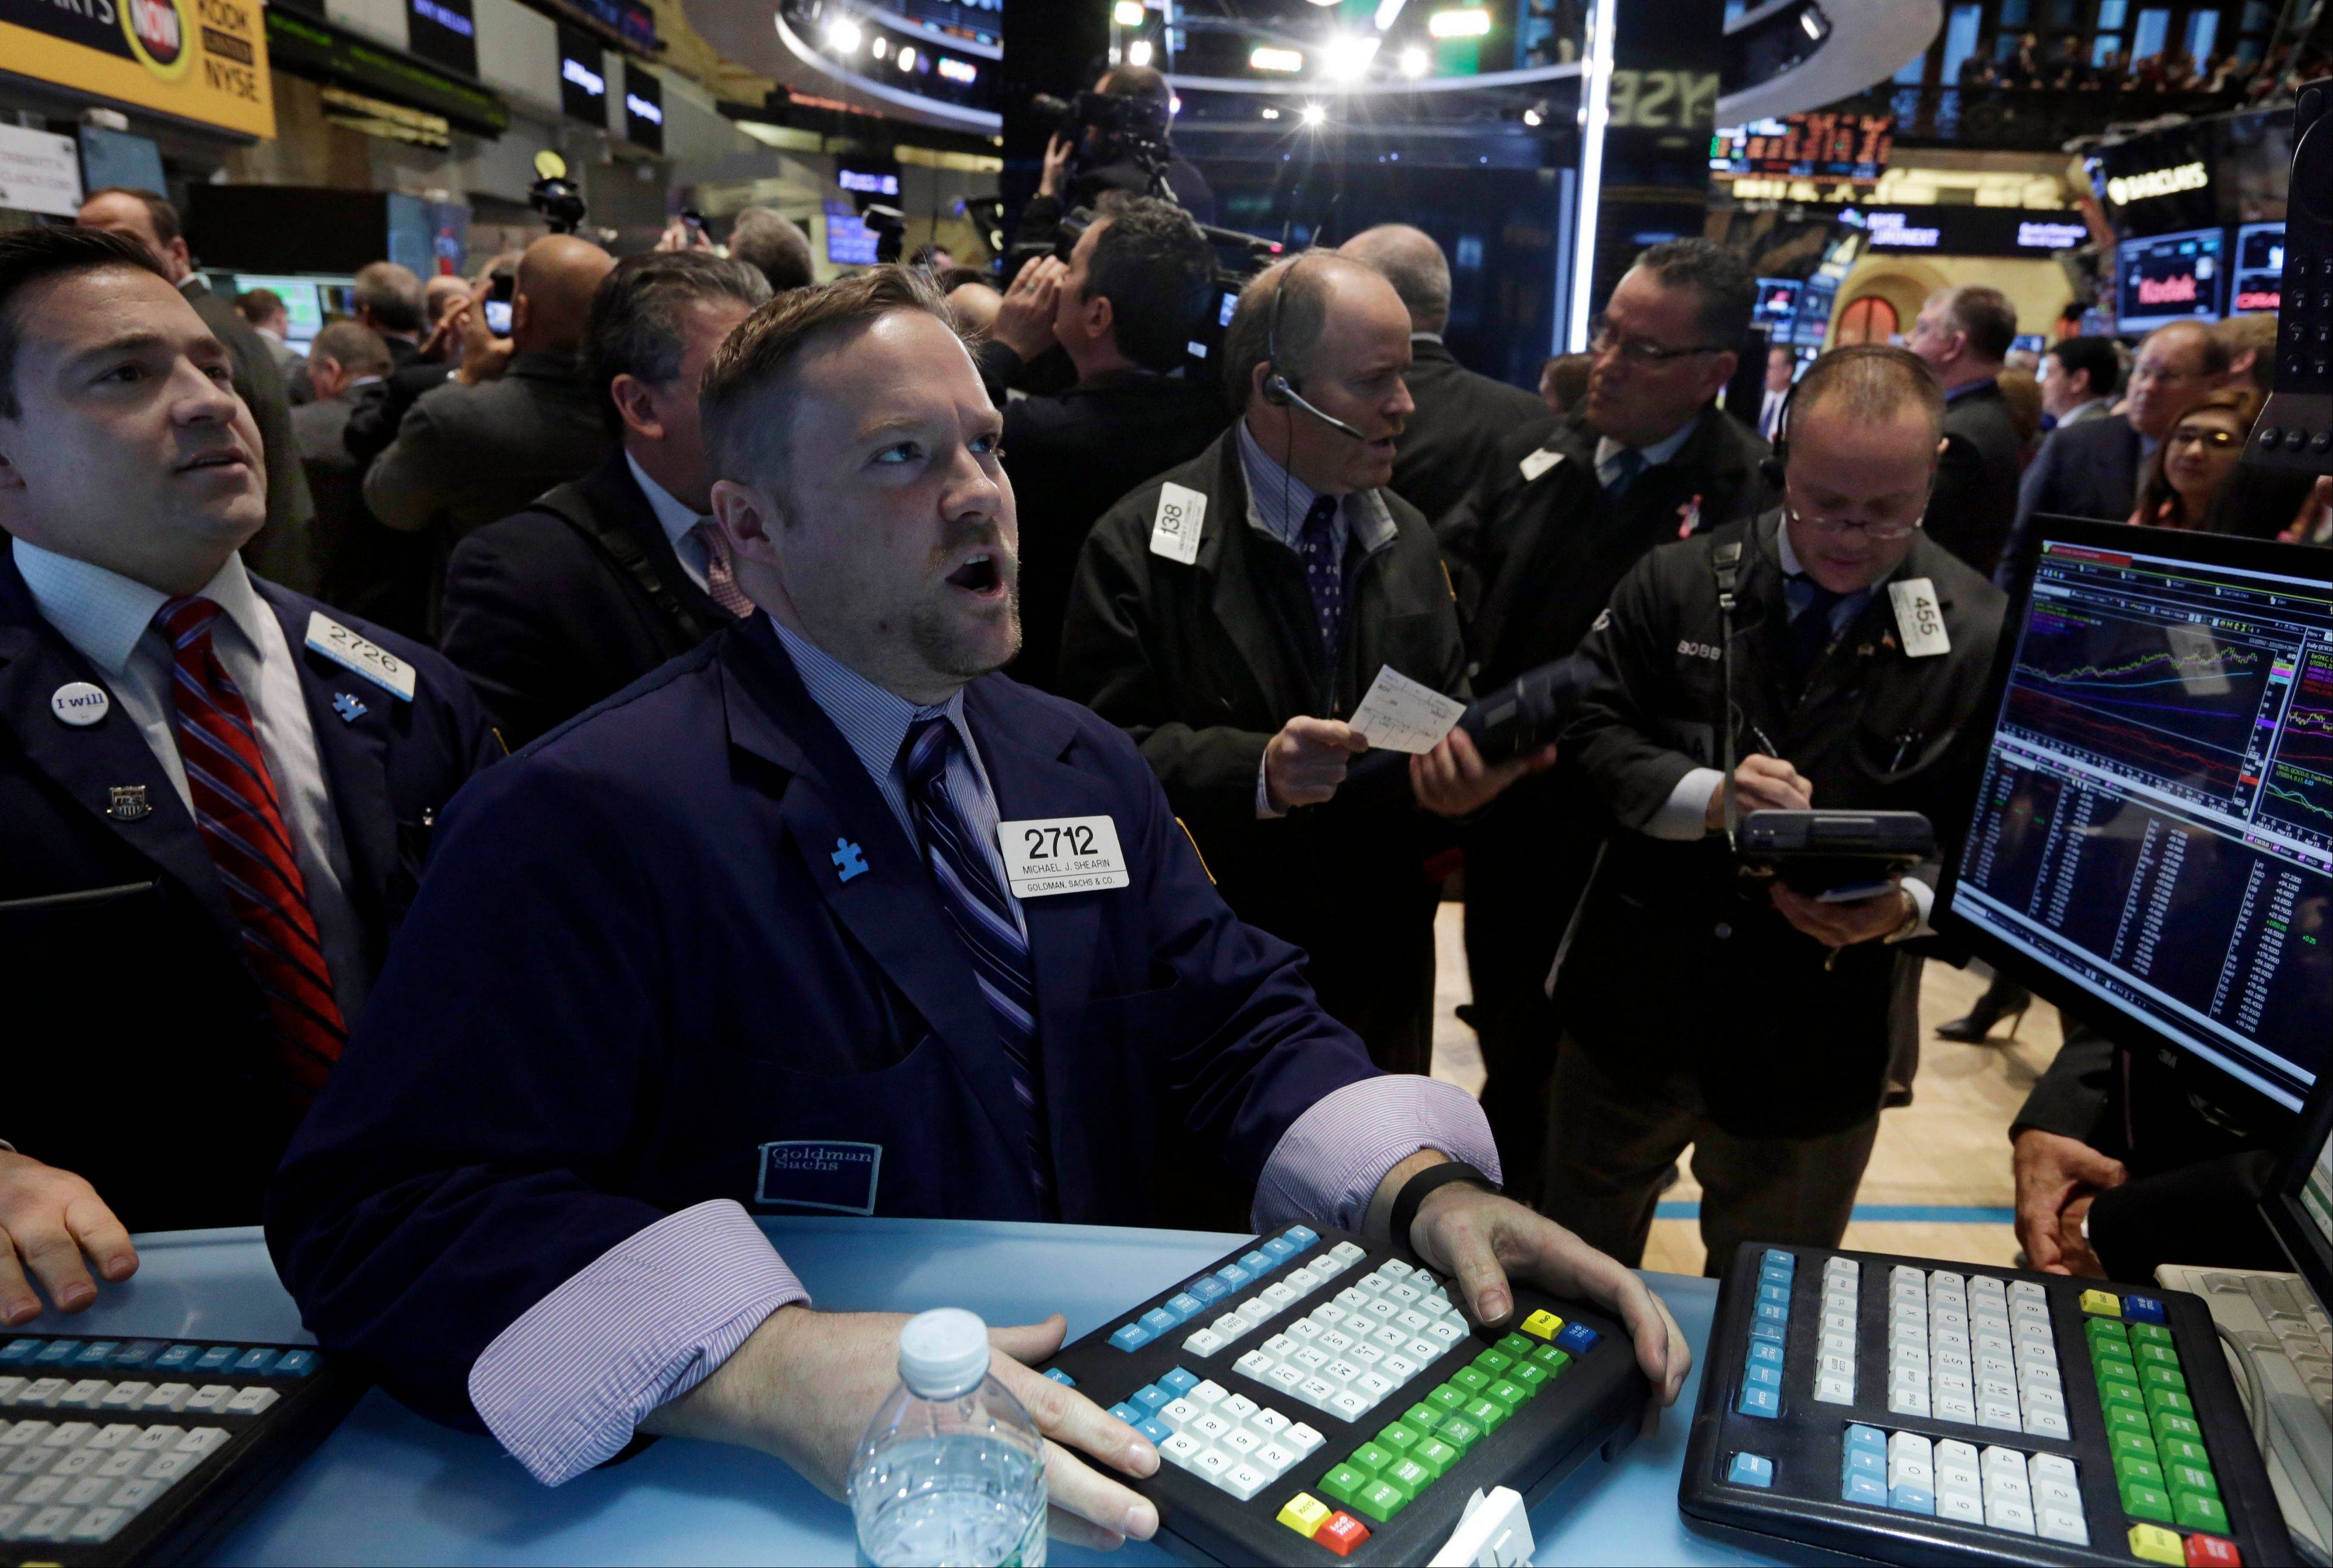 Stocks were little changed Thursday, as retailers slumped and investors awaited Friday's jobs report for clues to whether the Federal Reserve will accelerate the pace of stimulus cuts.